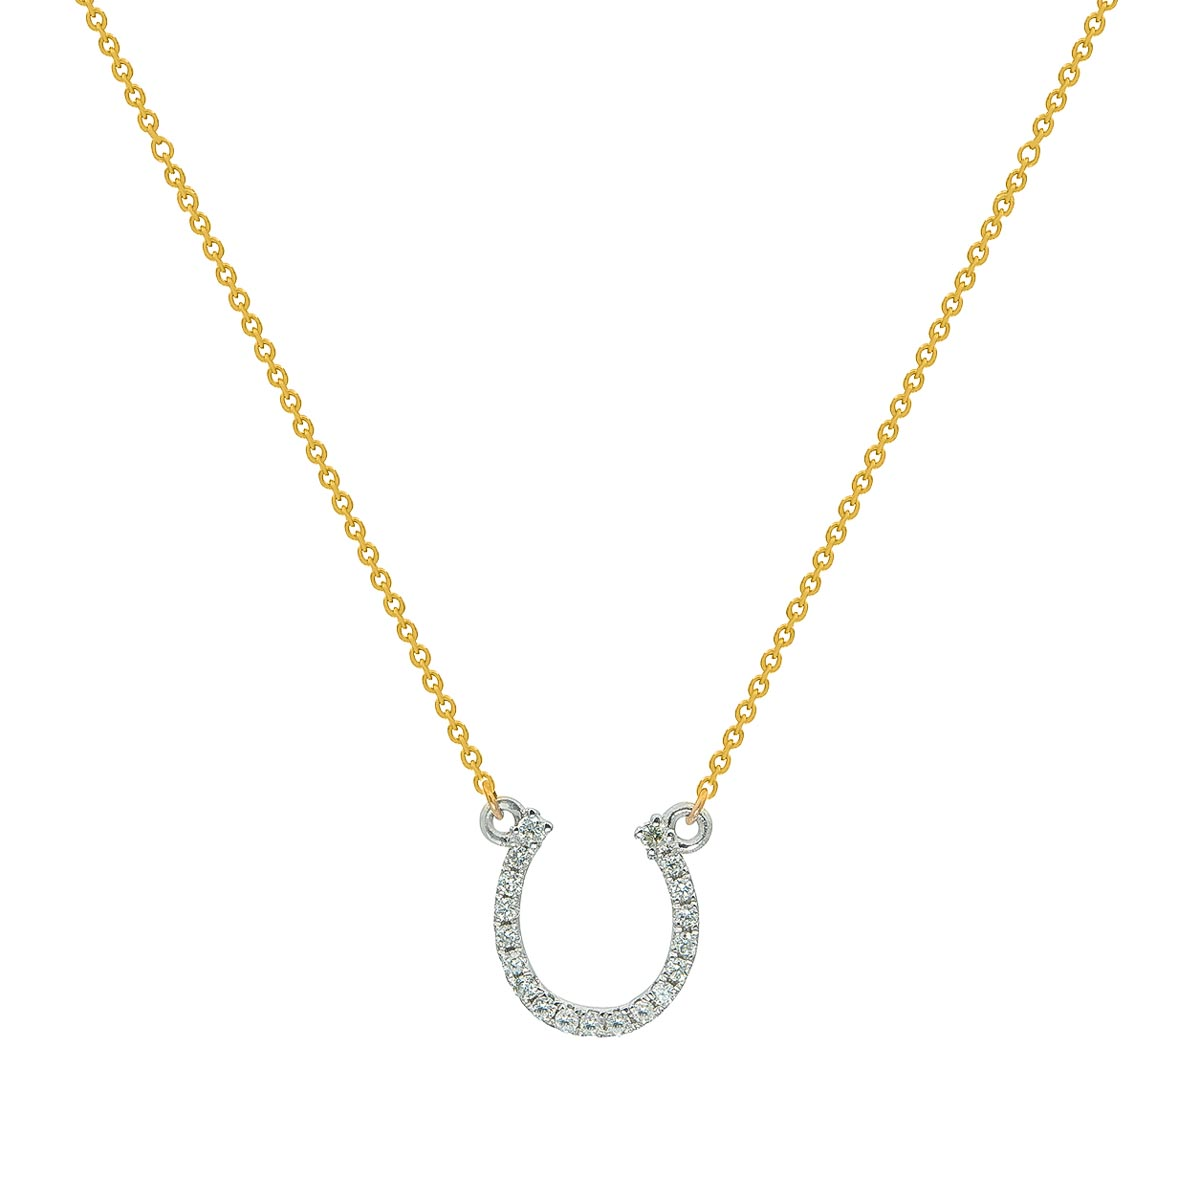 Classic Good Luck Horseshoe Shaped Diamond Pendant with Gold Chain